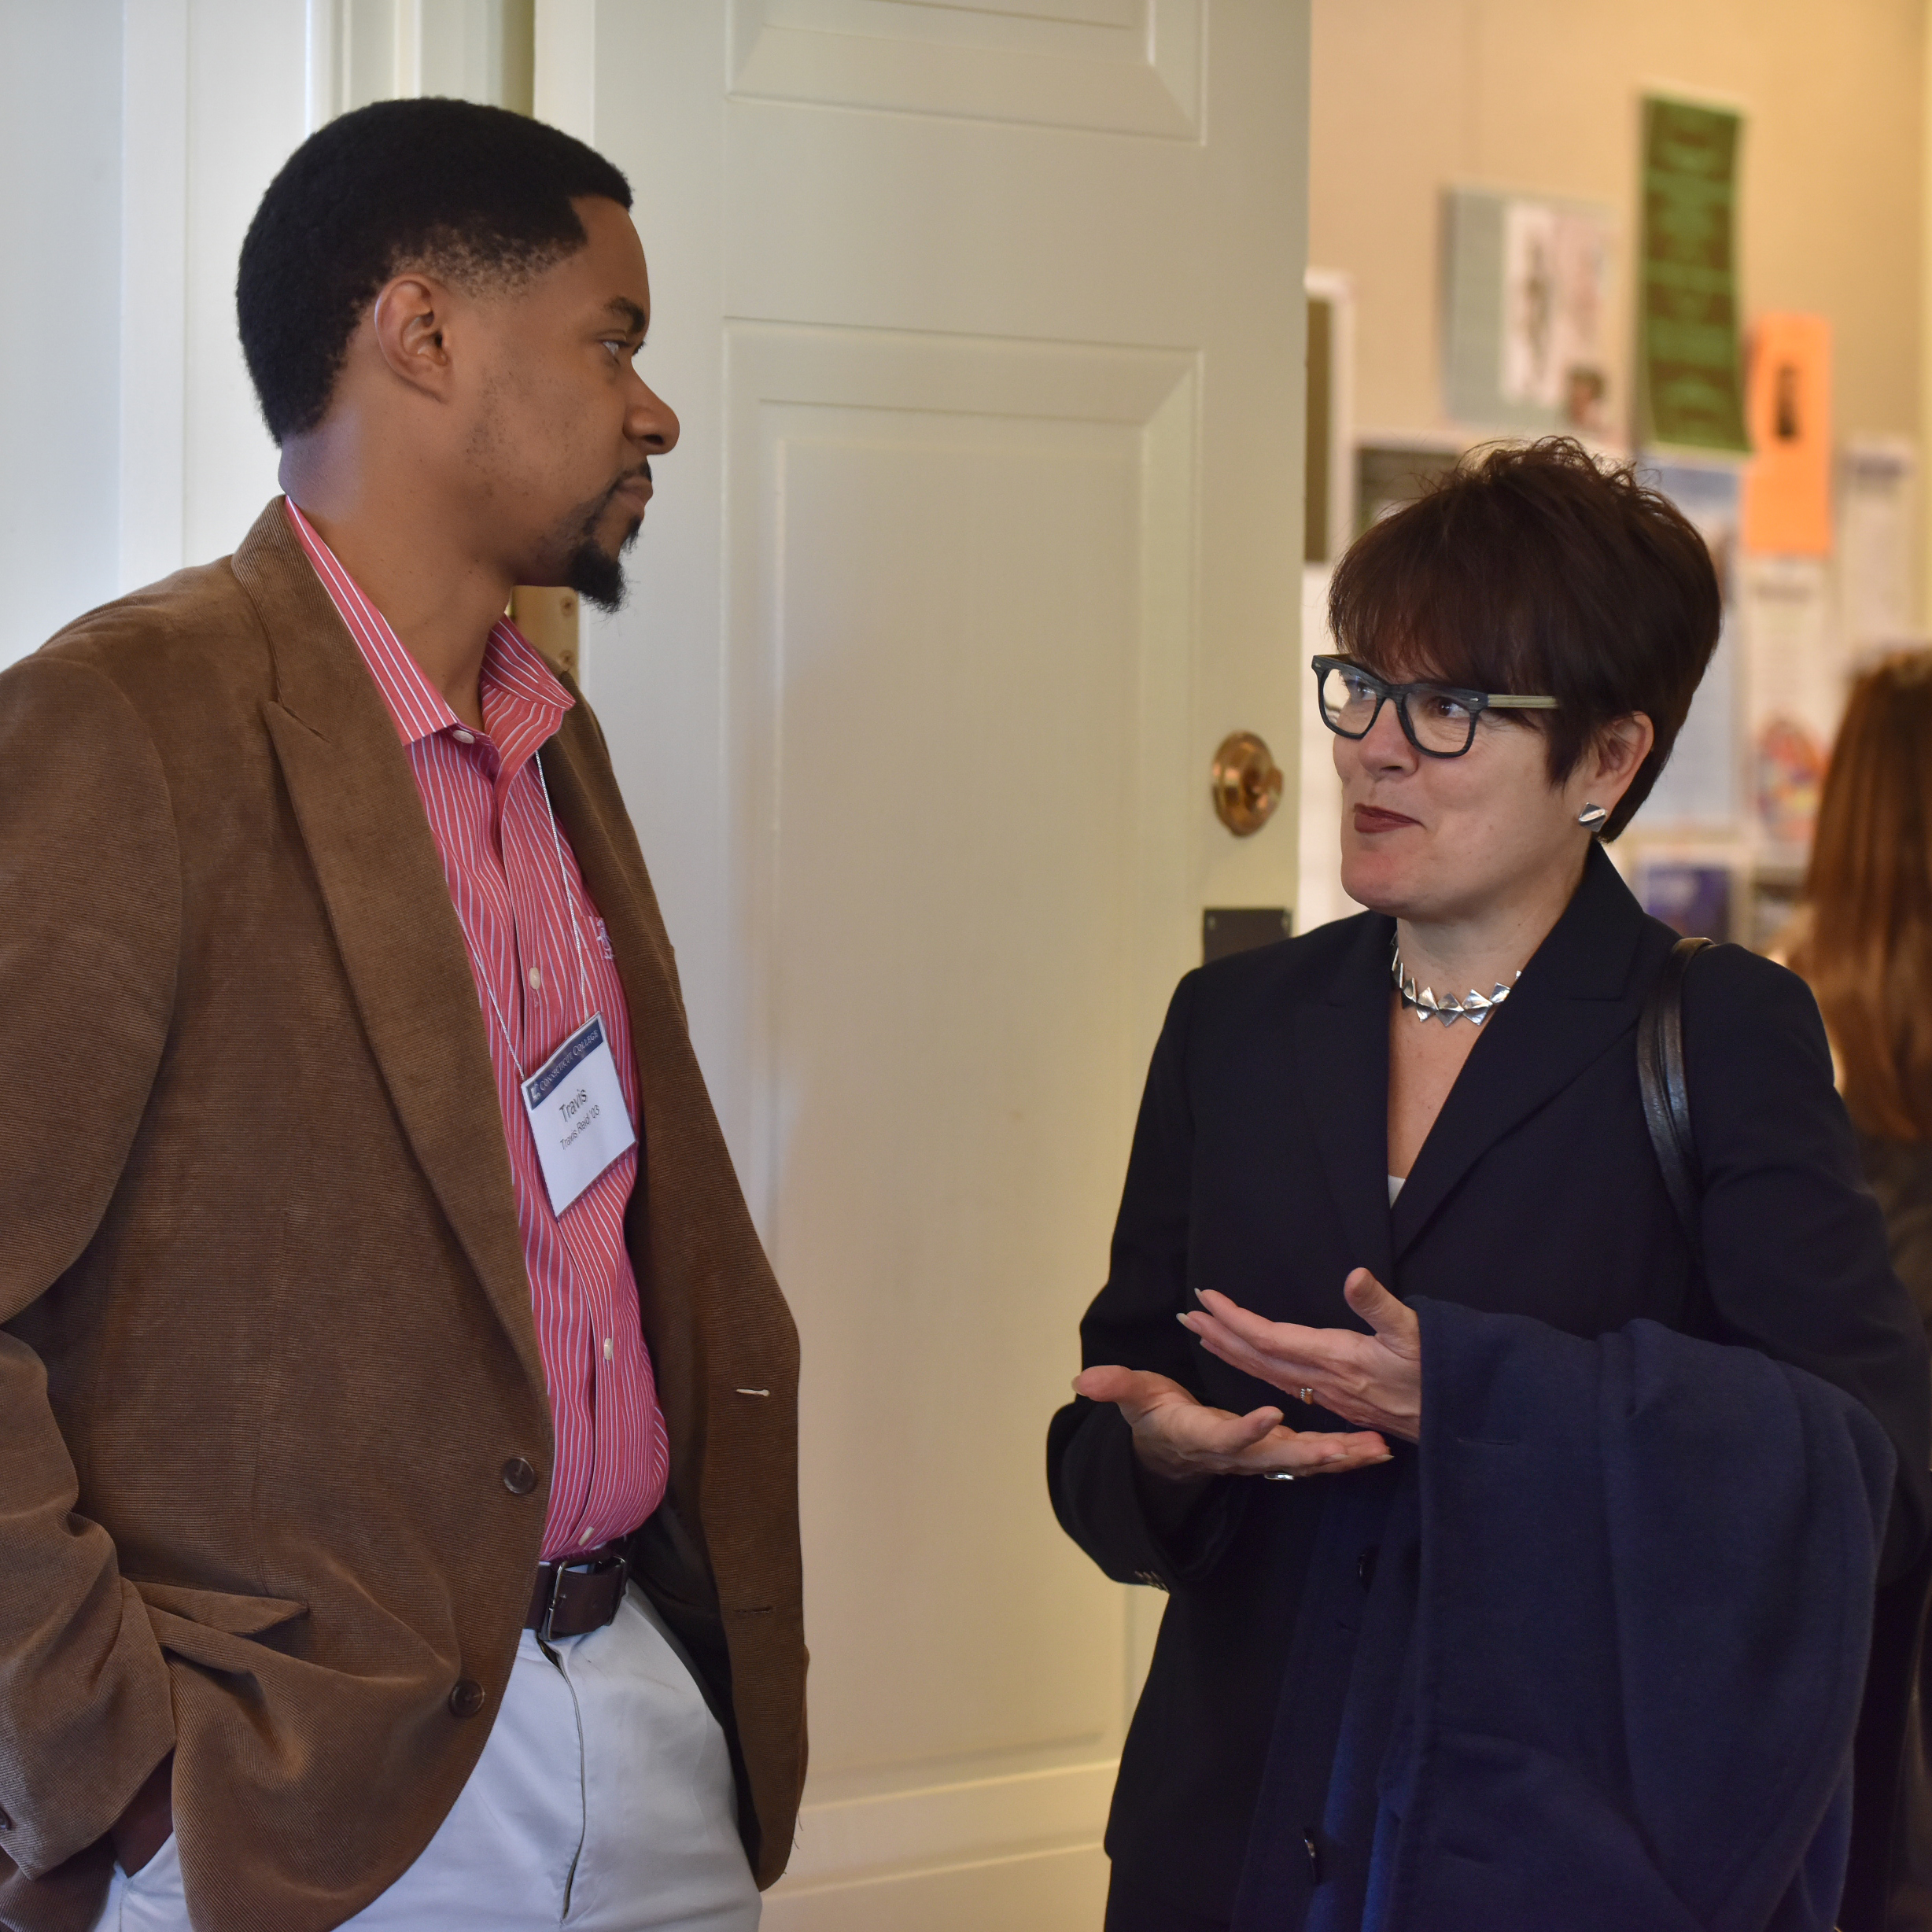 Travis Reid '03 speaks with President Katherine Bergeron prior to his keynote address at the Connecticut College Alumni of Color luncheon.